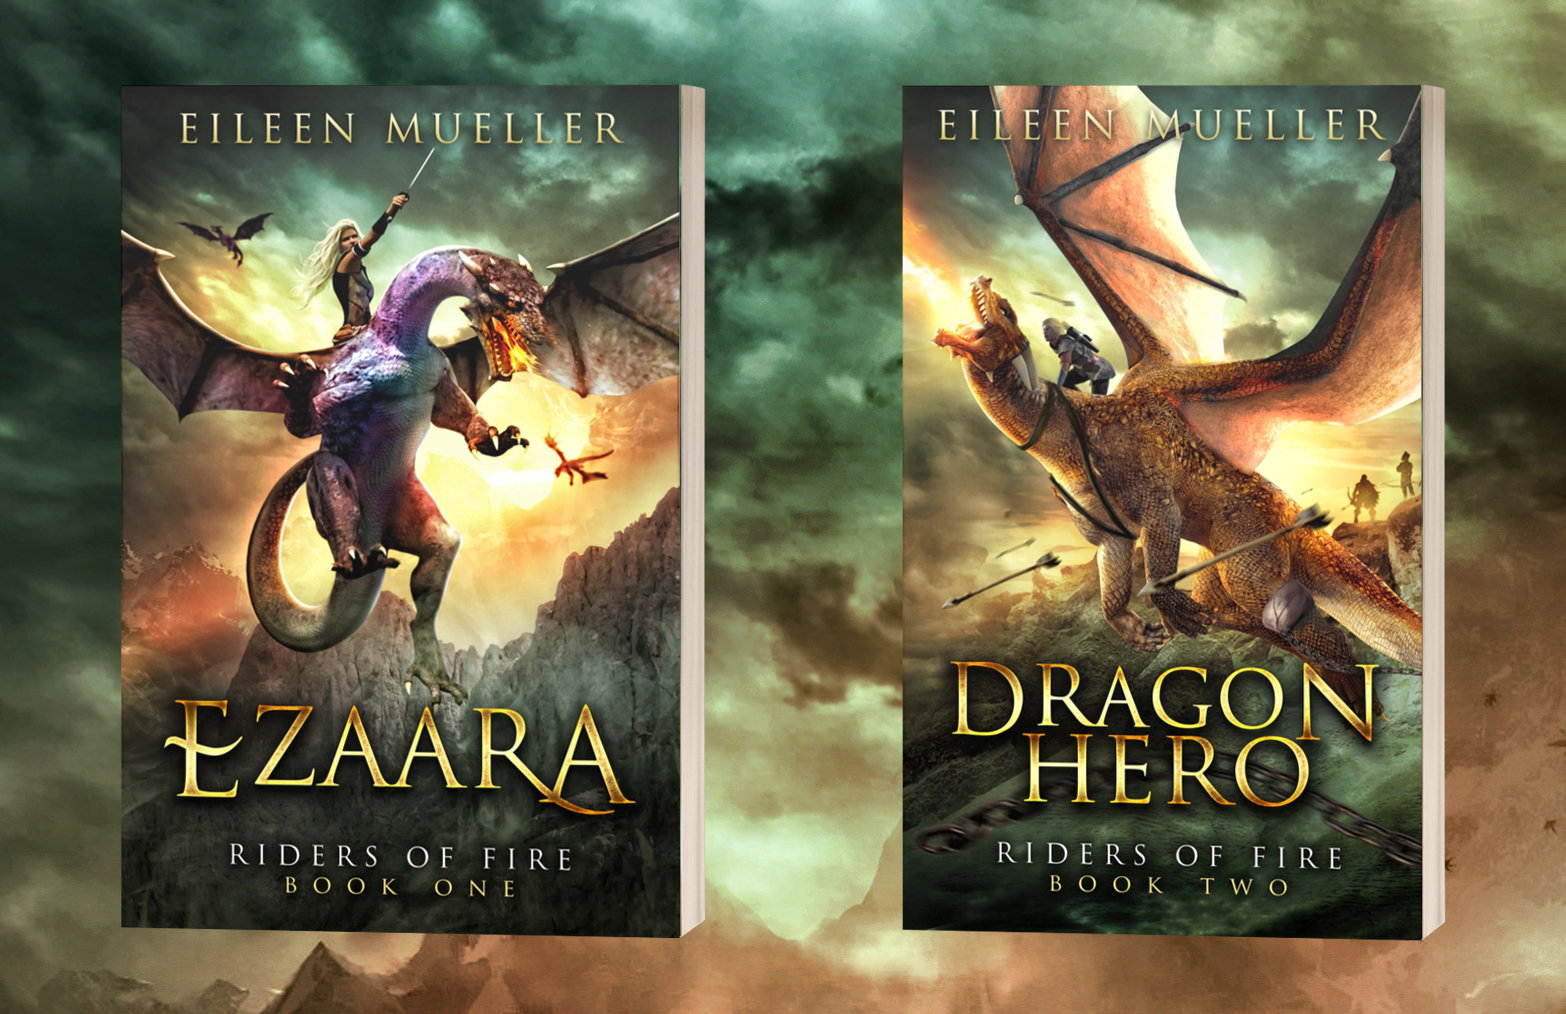 Ezaara, Dragon Hero, Riders of Fire, Young Adult dragon adventures, a wild ride of thrills and danger, Ezaara Book 1, Dragon Hero book 2 by Eileen Mueller